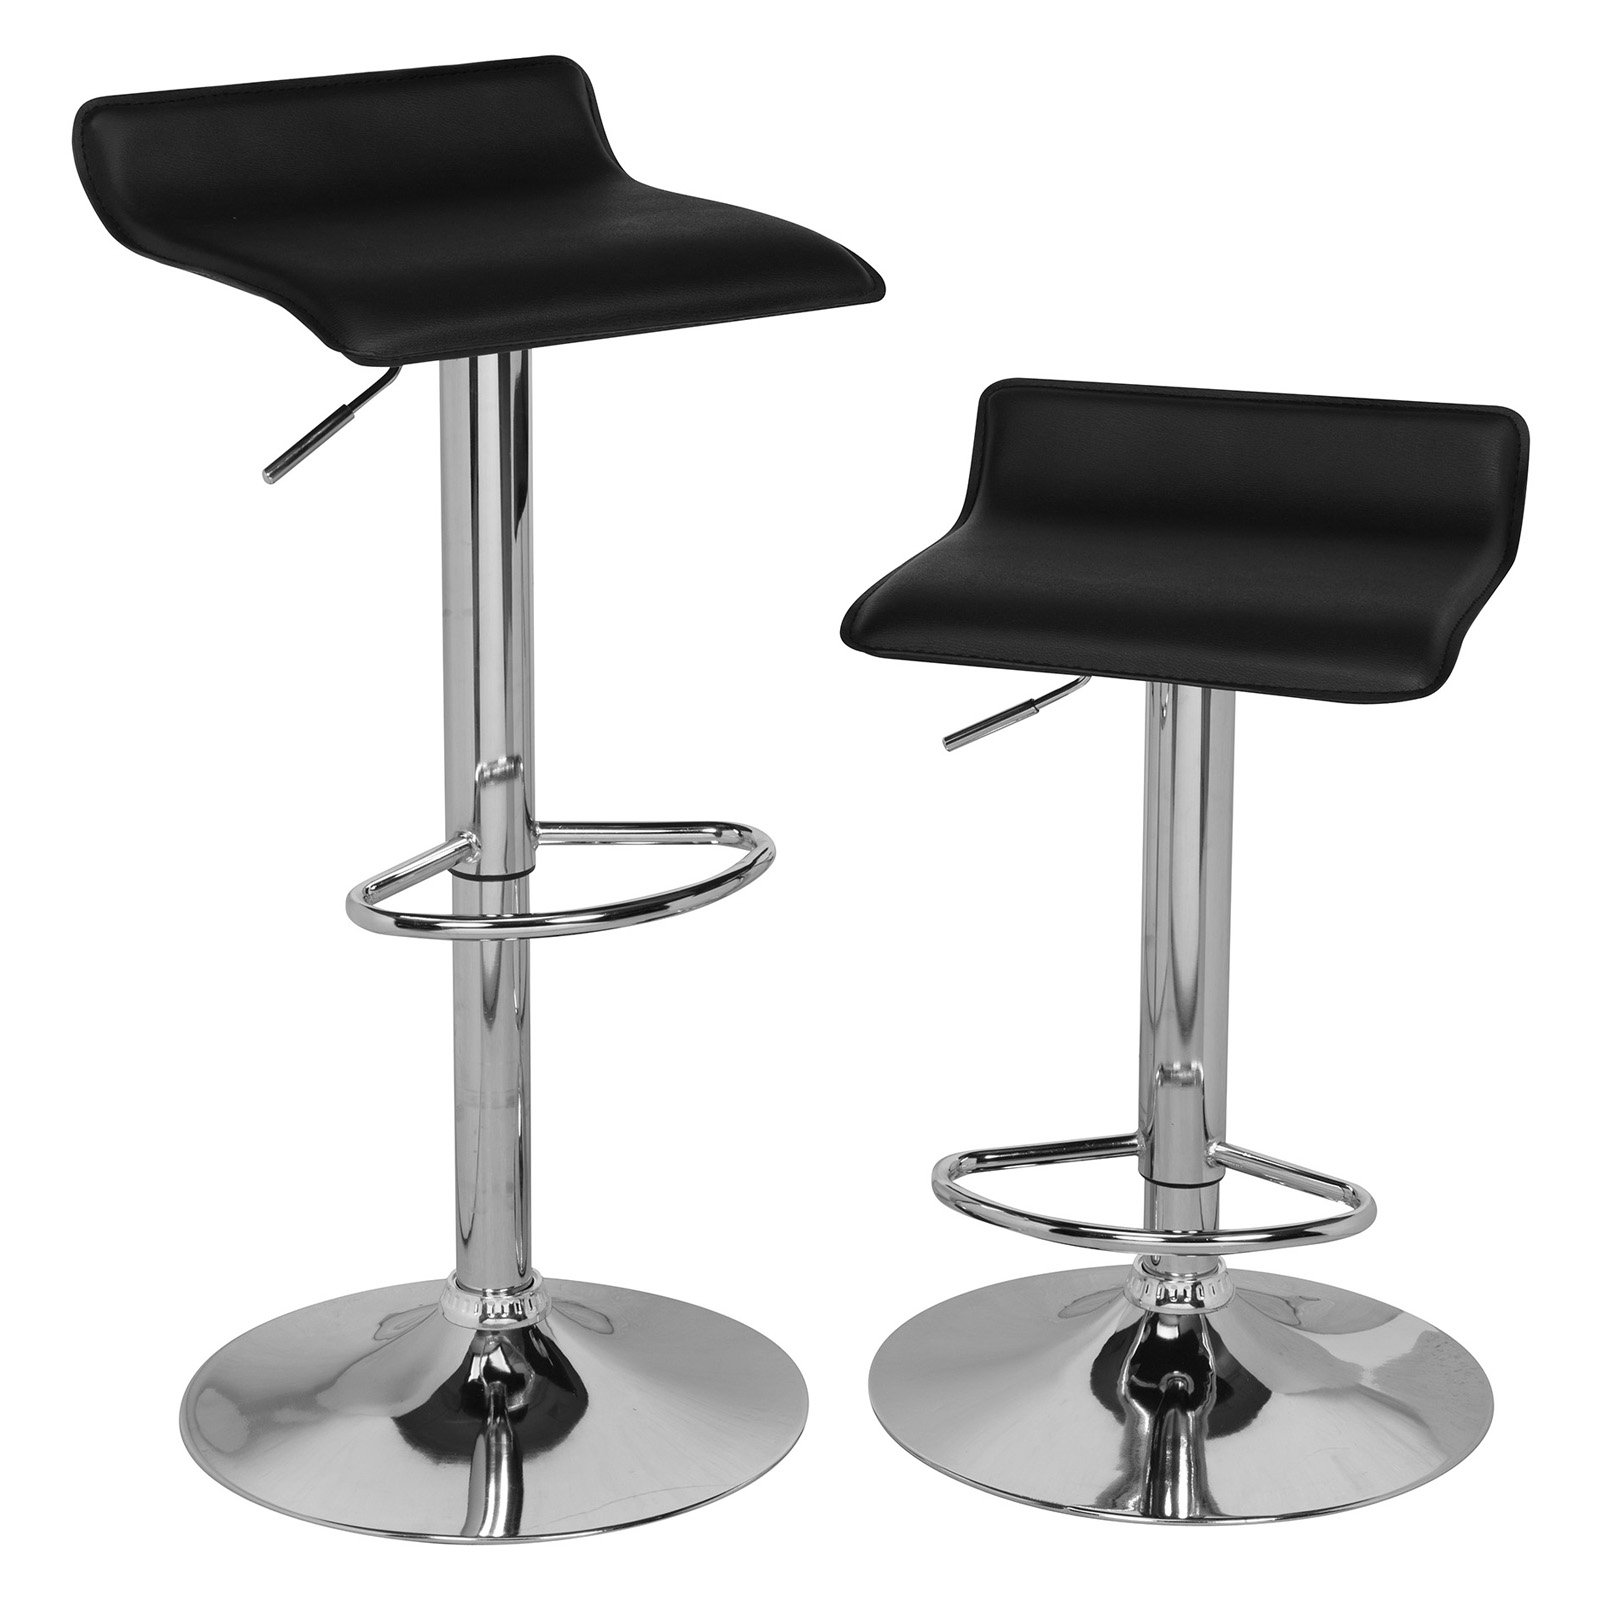 Comfort Products Adjustable Bar Stools, Set of 2